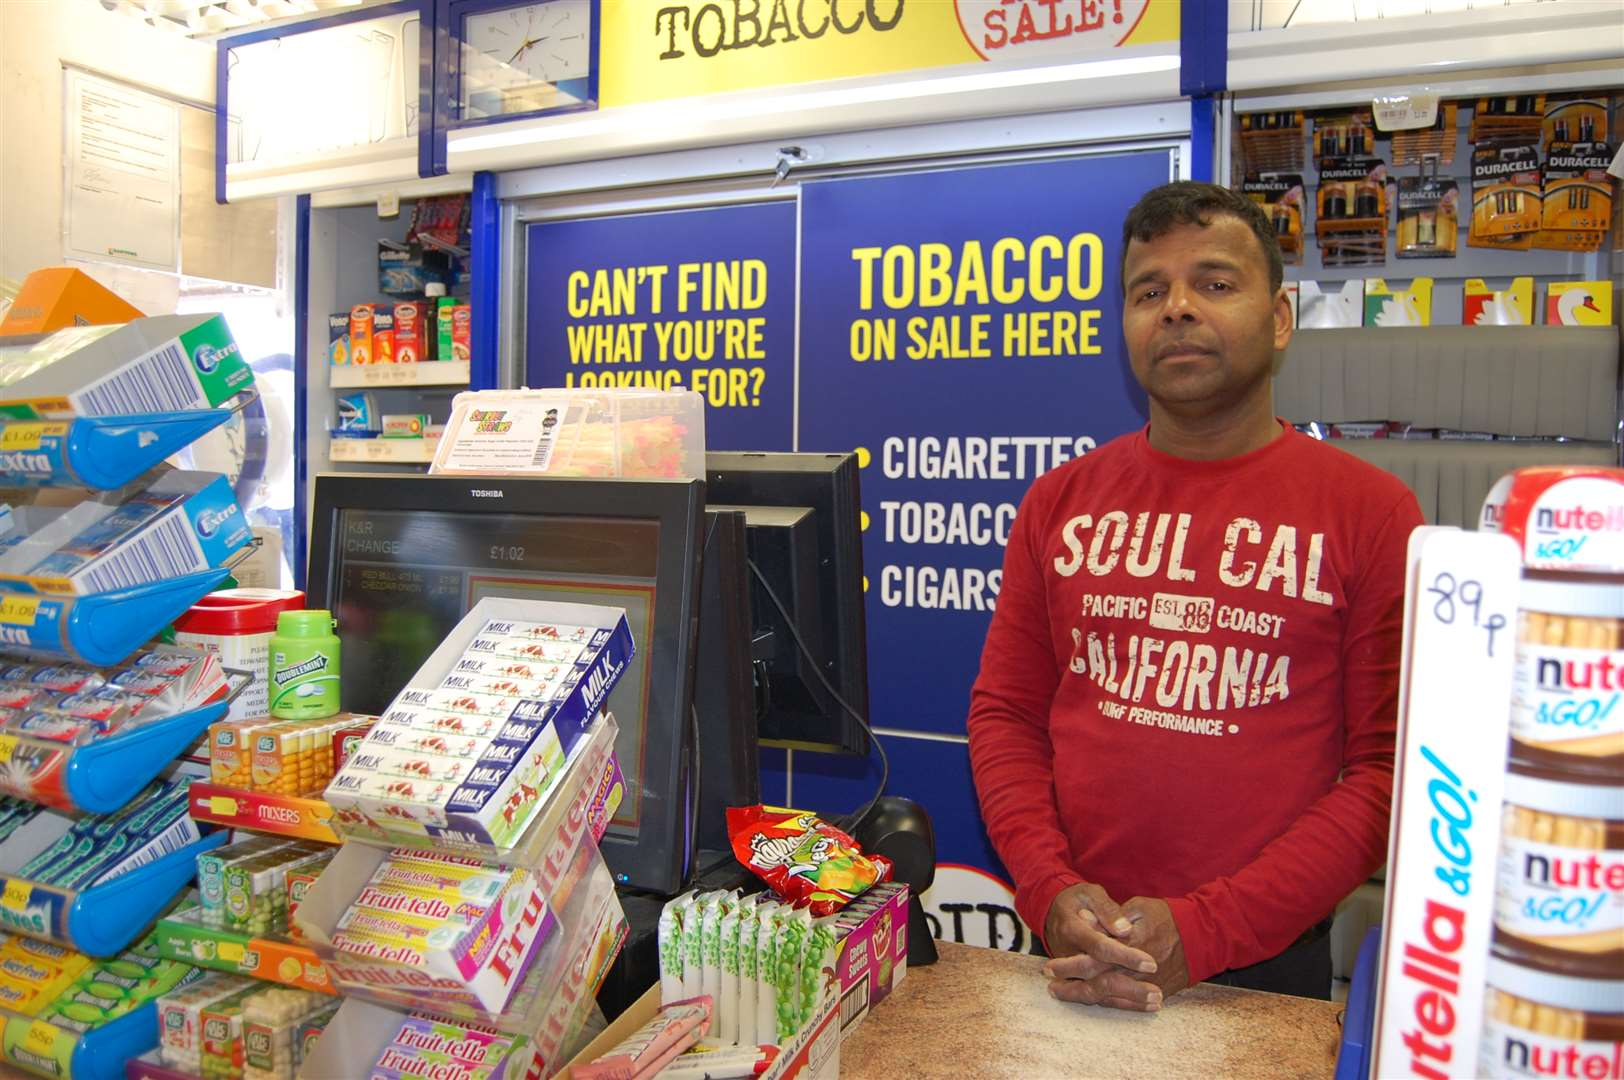 Kandasamy Sivanathan was forced to hand over hundreds of pounds from the shop's till.